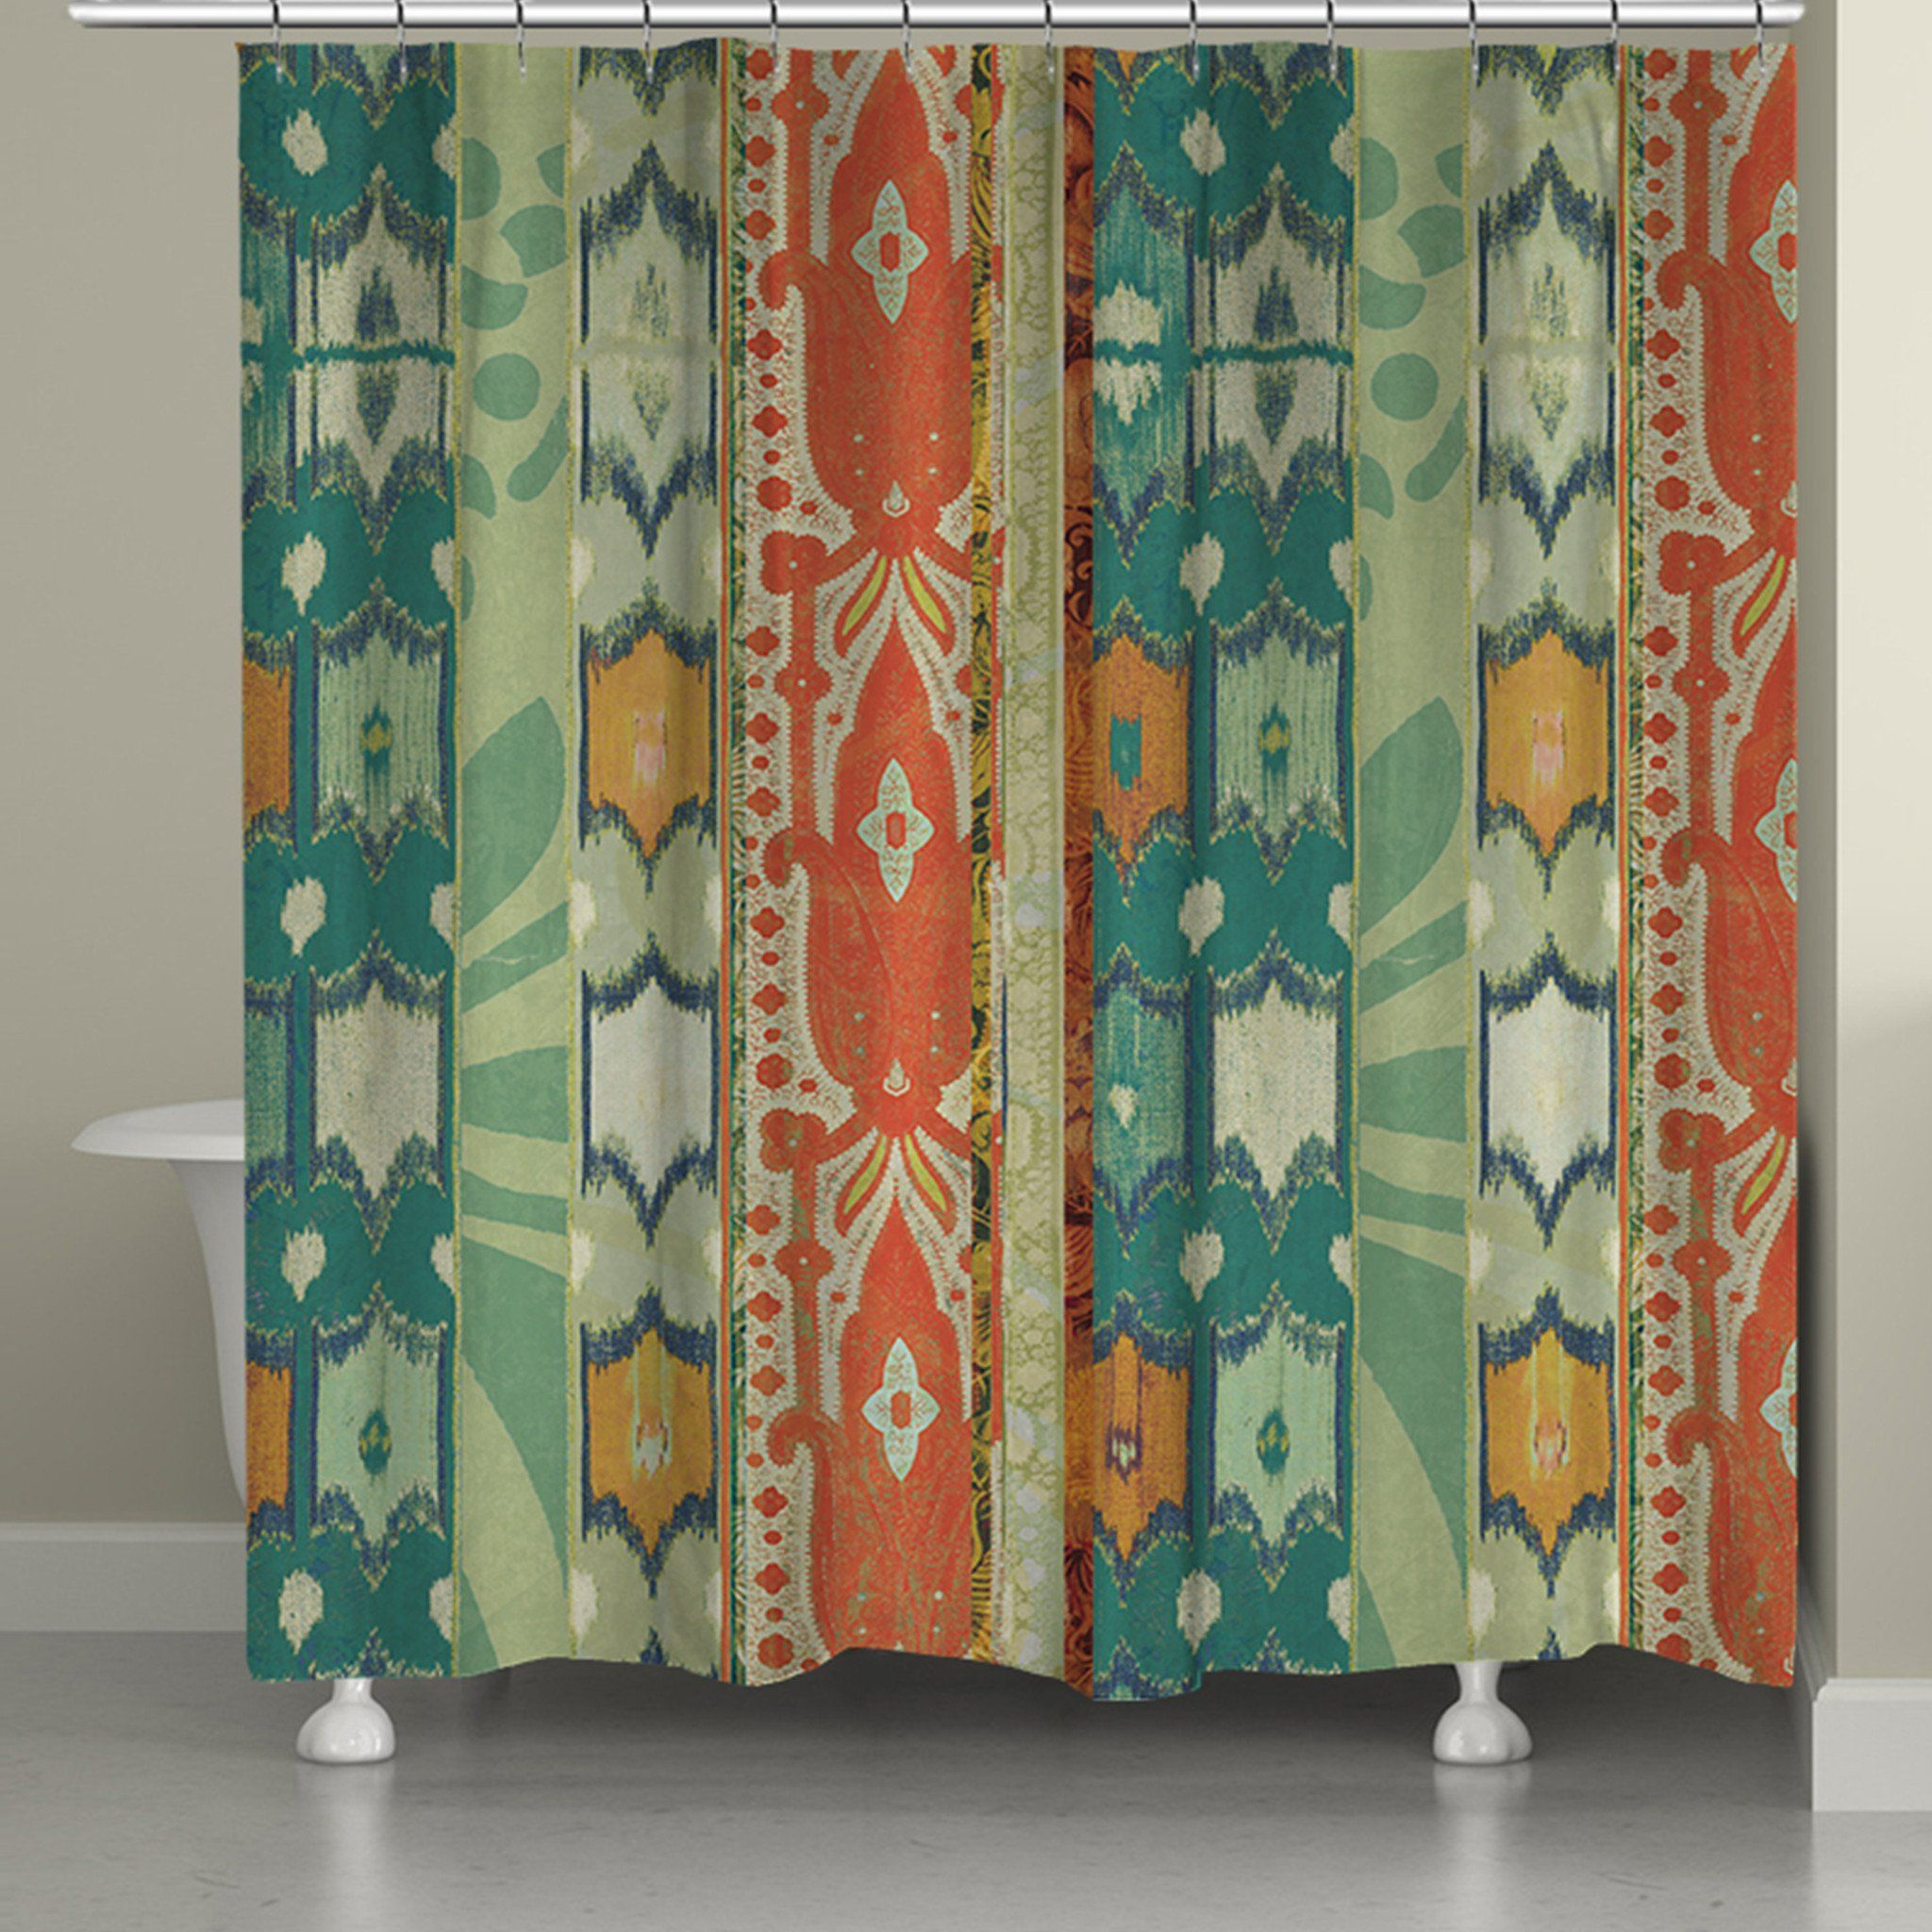 Ikat Bloom Shower Curtain is part of Bohemian Home Accessories Ideas - A unique and interesting pattern with soft shades of blue, green and orange  Guaranteed to brighten any bathroom decor   All of our products are digitally printed to create crisp, vibrant colors and images  Made to order in the USA, with you in mind  Printed on imported fabric  Please allow 57 days for items to ship